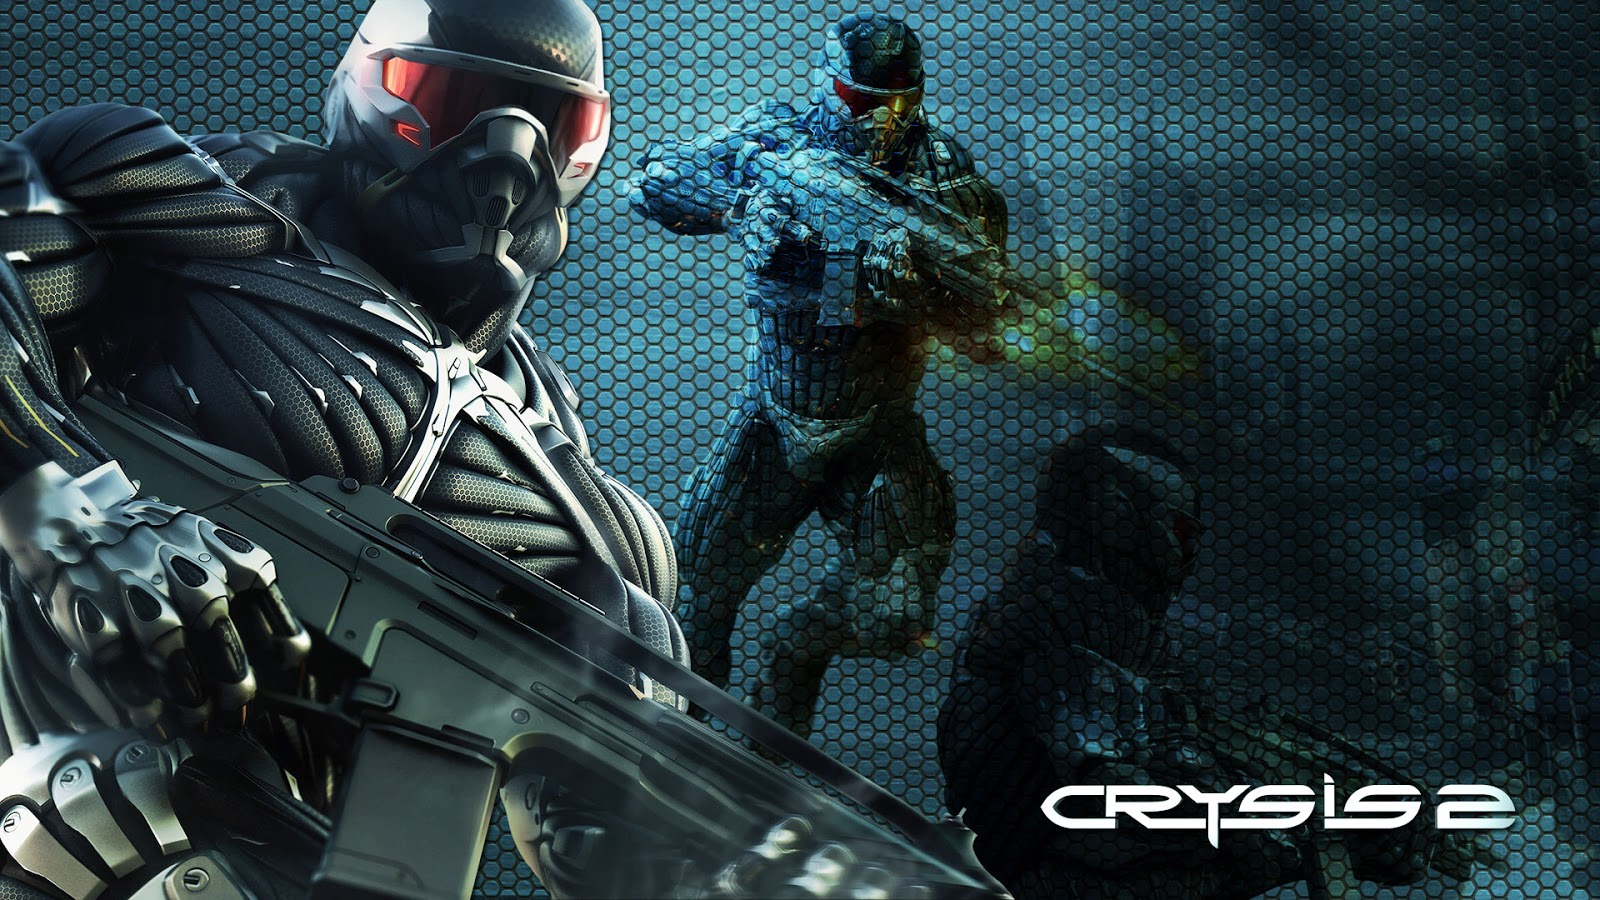 Crysis 3 2013 Video Game 4k Hd Desktop Wallpaper For 4k: Wallpapers: Call Of Duty, Battlefield, Crysis, Medal Of